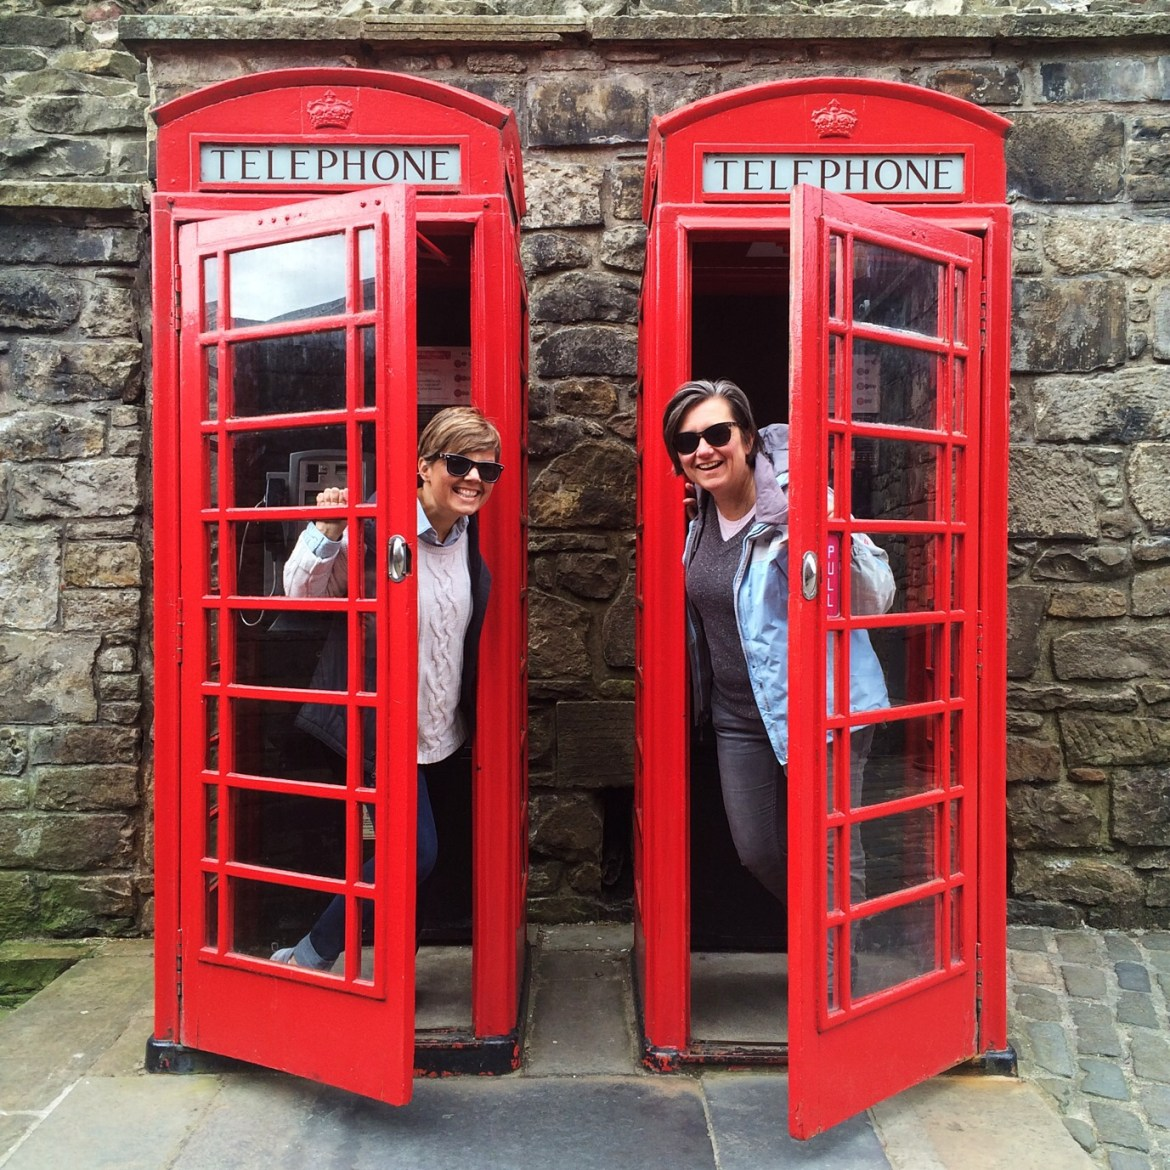 Visiting Edinburgh, Red Phone Booths, UK, Scotland